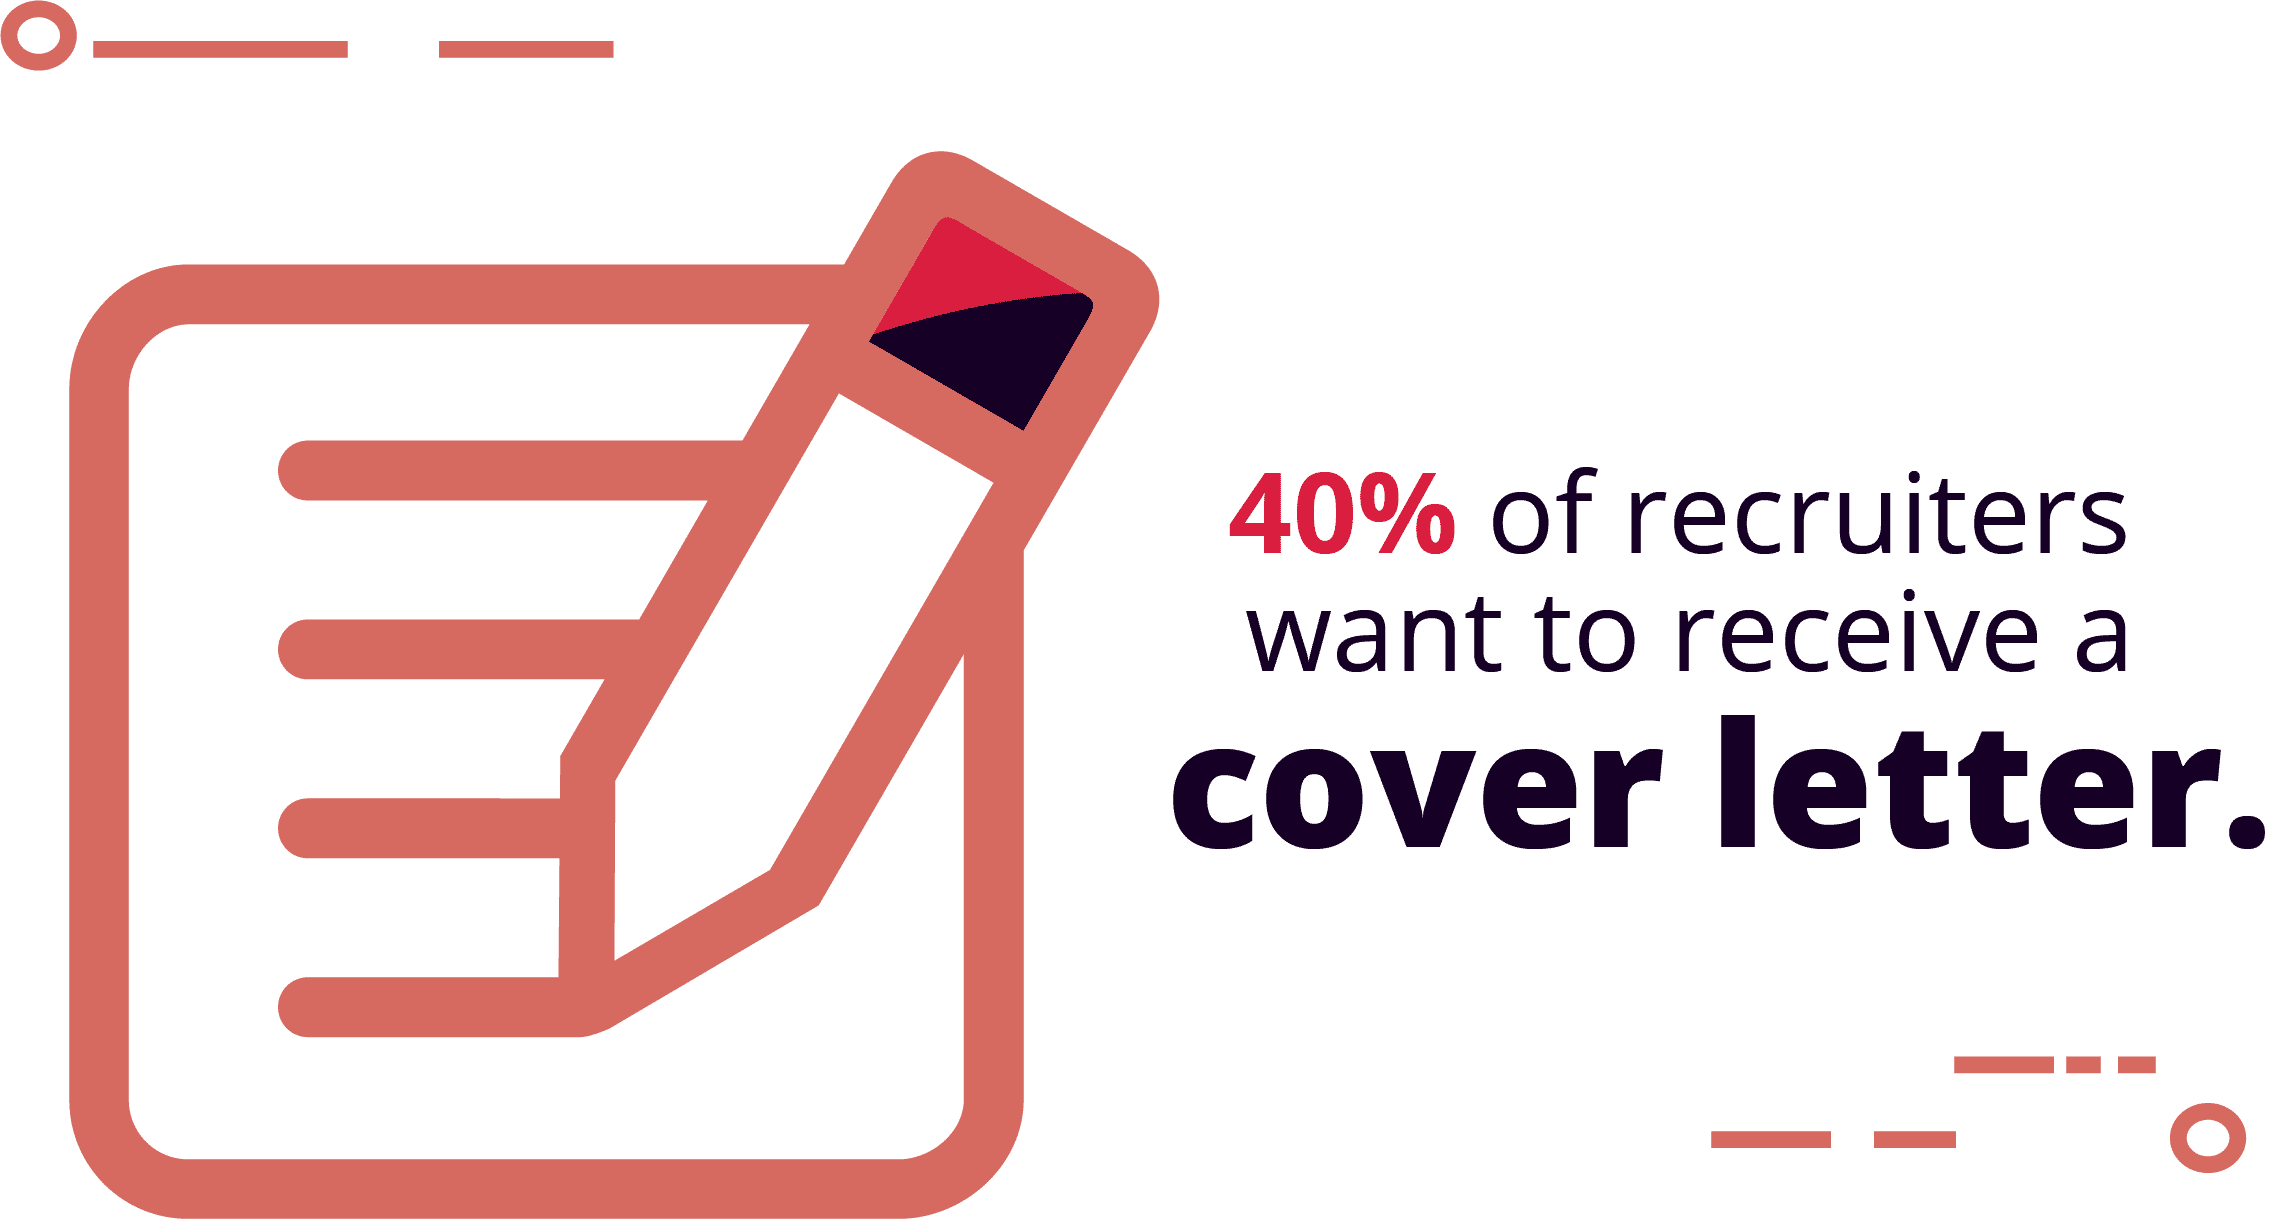 45% of hiring managers prefer you also send a cover letter along with your resume